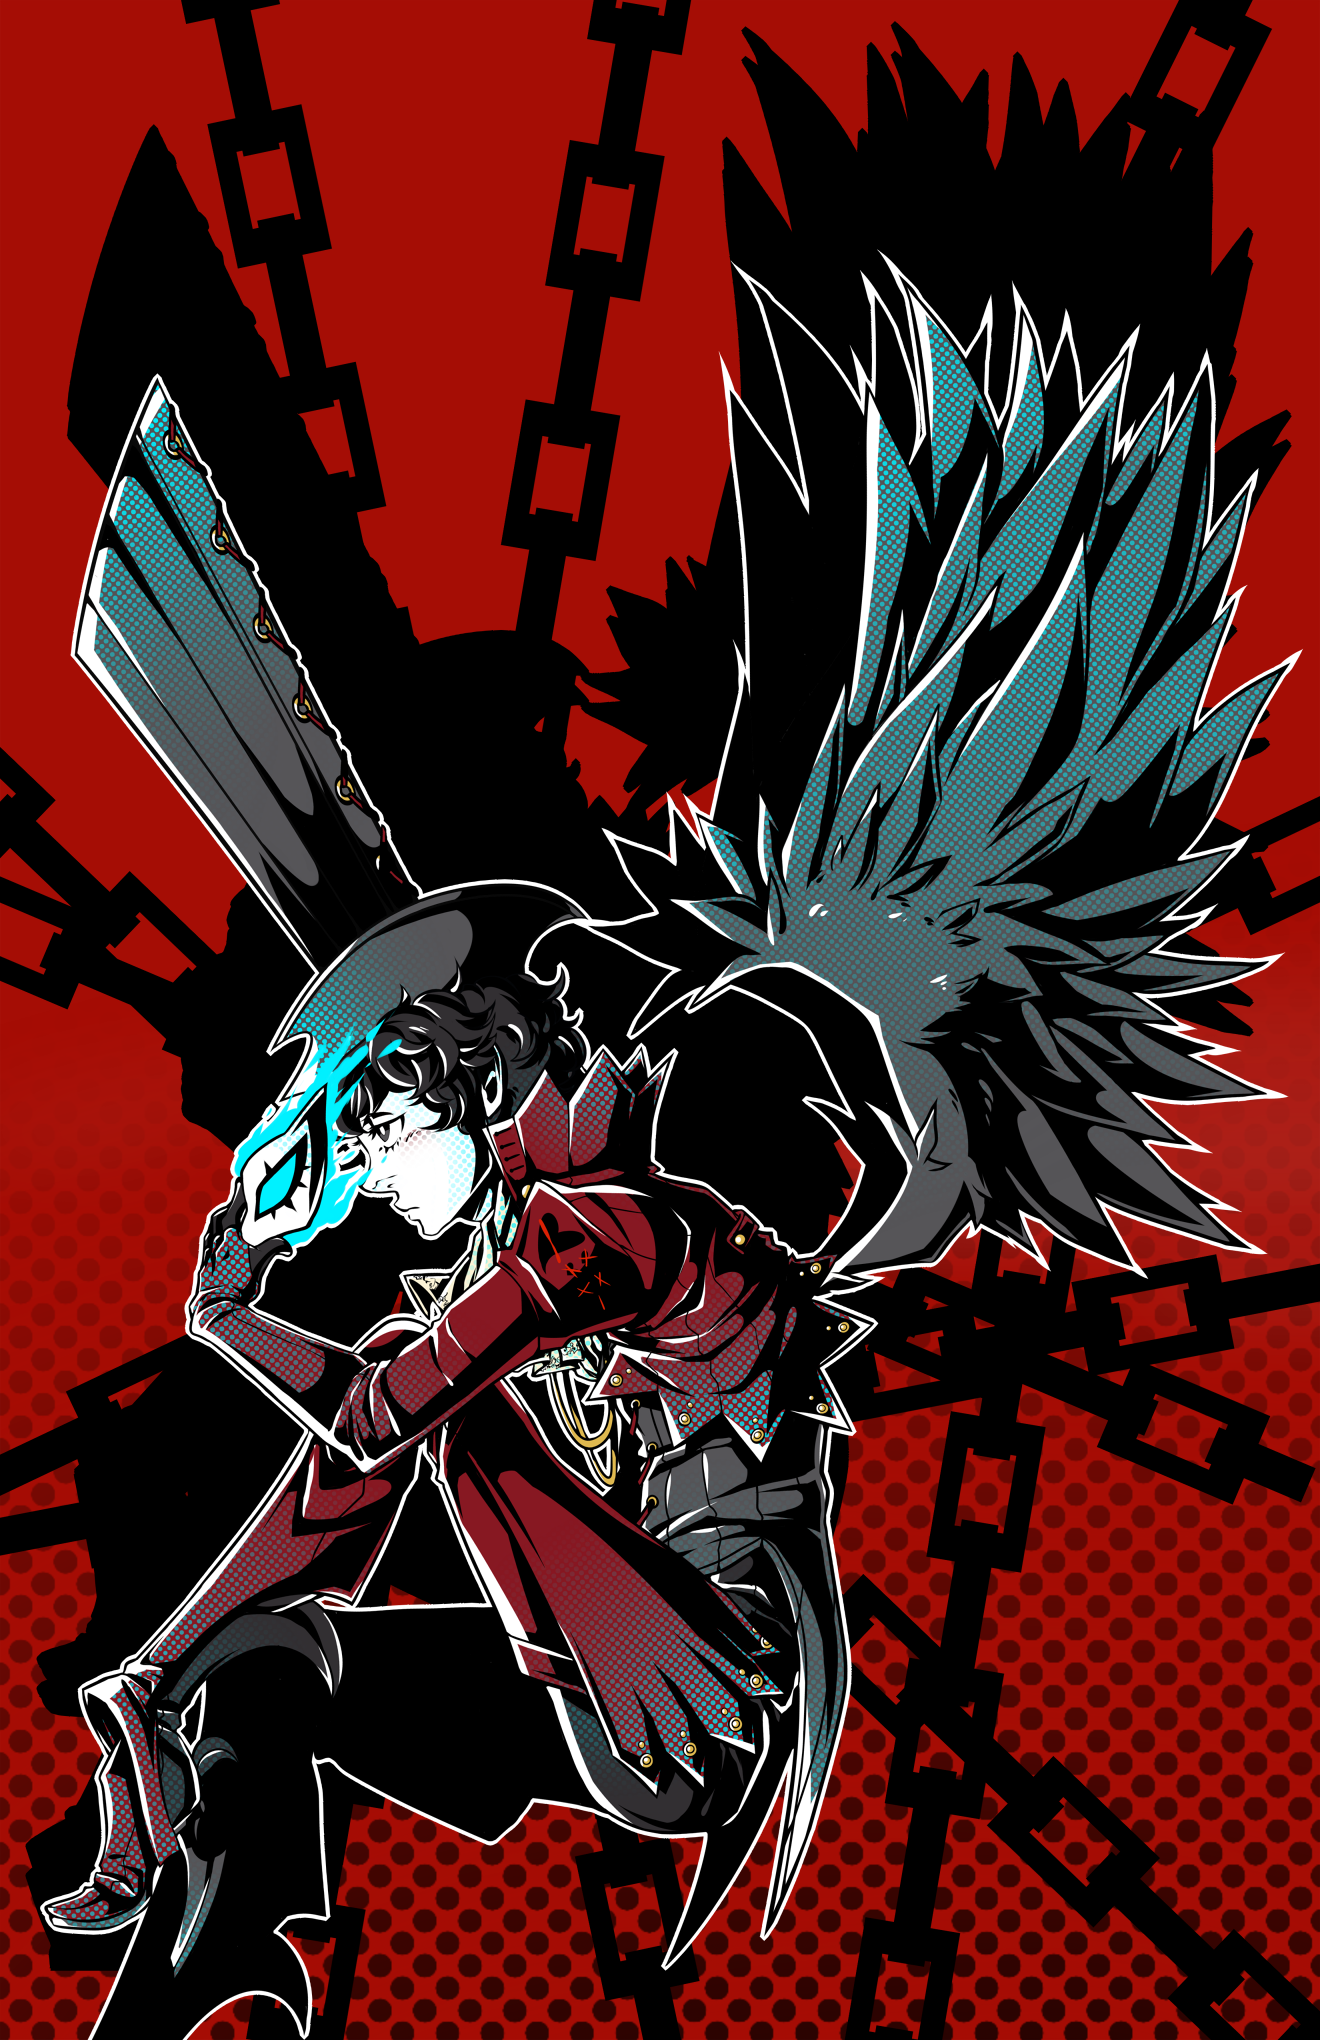 Cell Phone Wallpaper 61 Full Hd Quality New Wallpapers In 2021 Persona 5 Joker Persona 5 Anime Persona 5